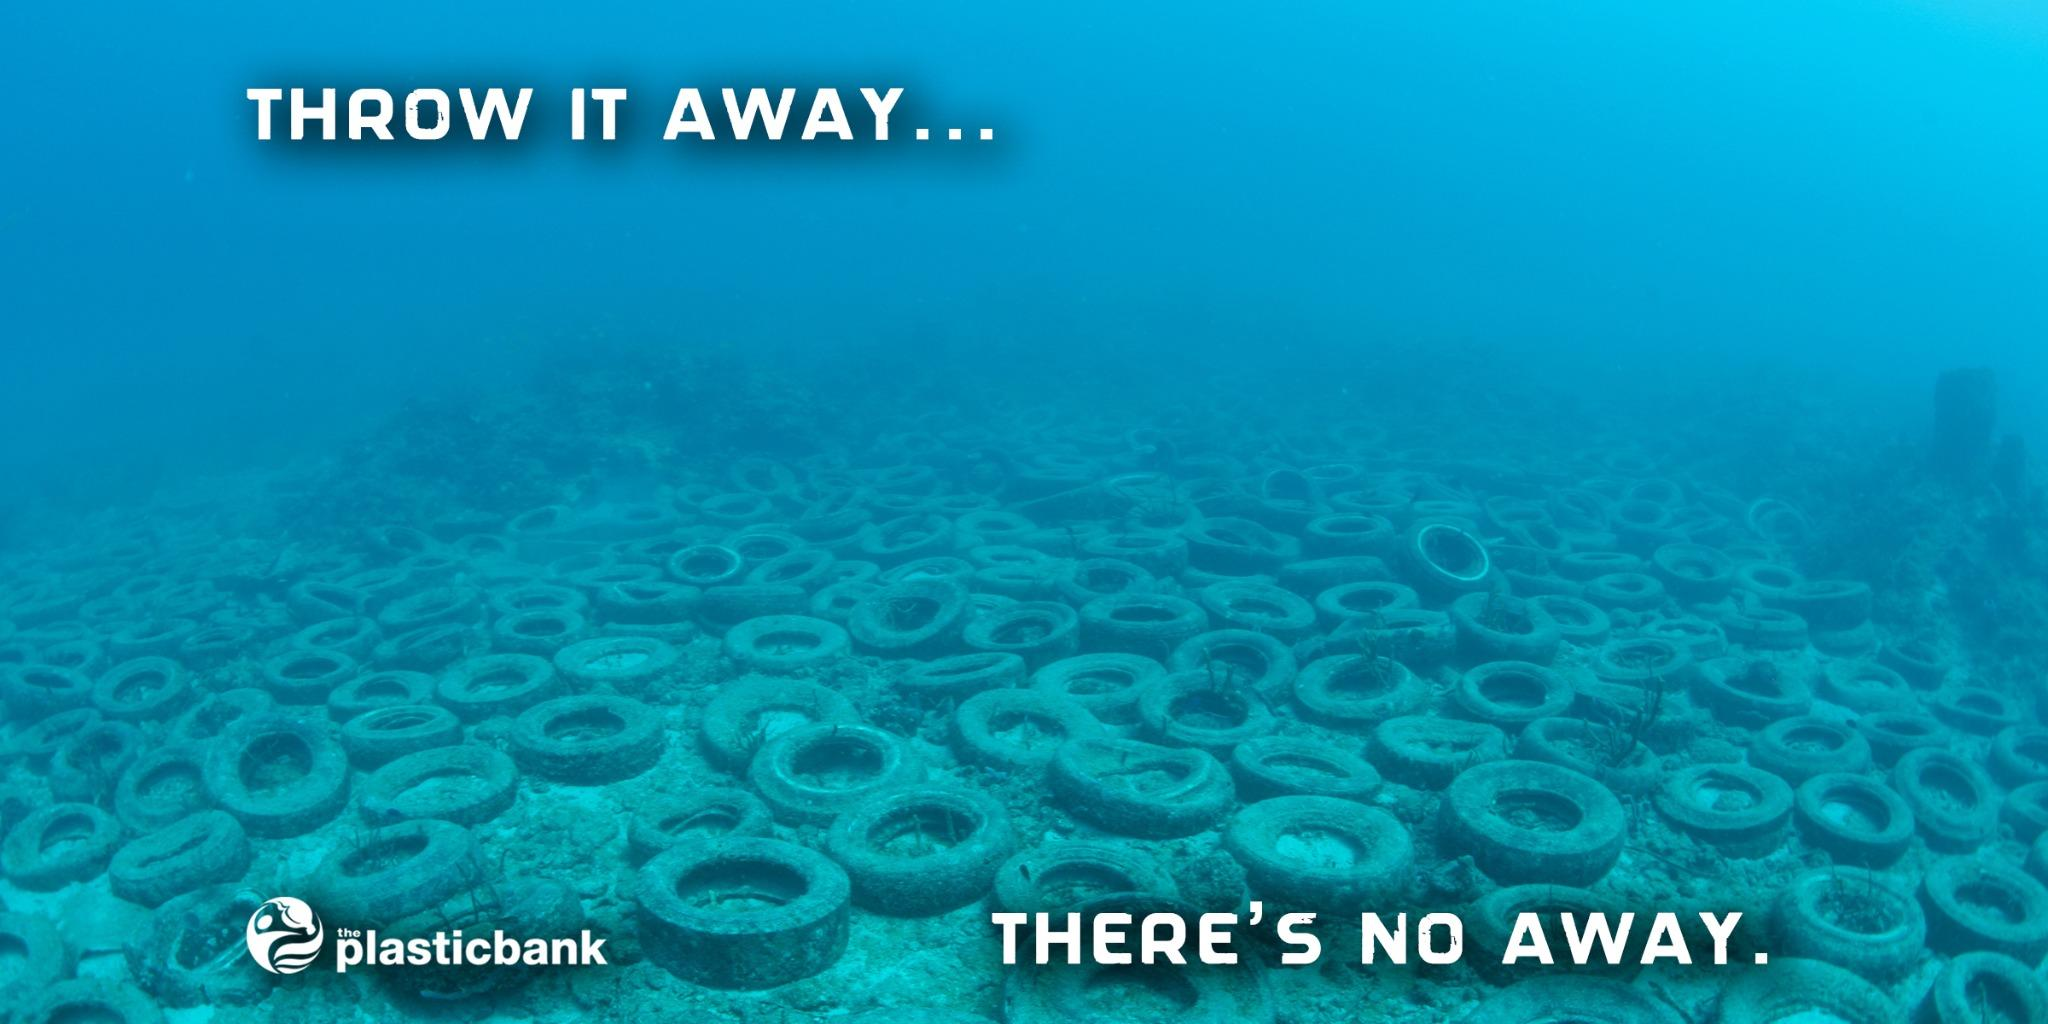 Plastikbank Plastic Bank On Twitter Quotthrow It Away No Such Thing